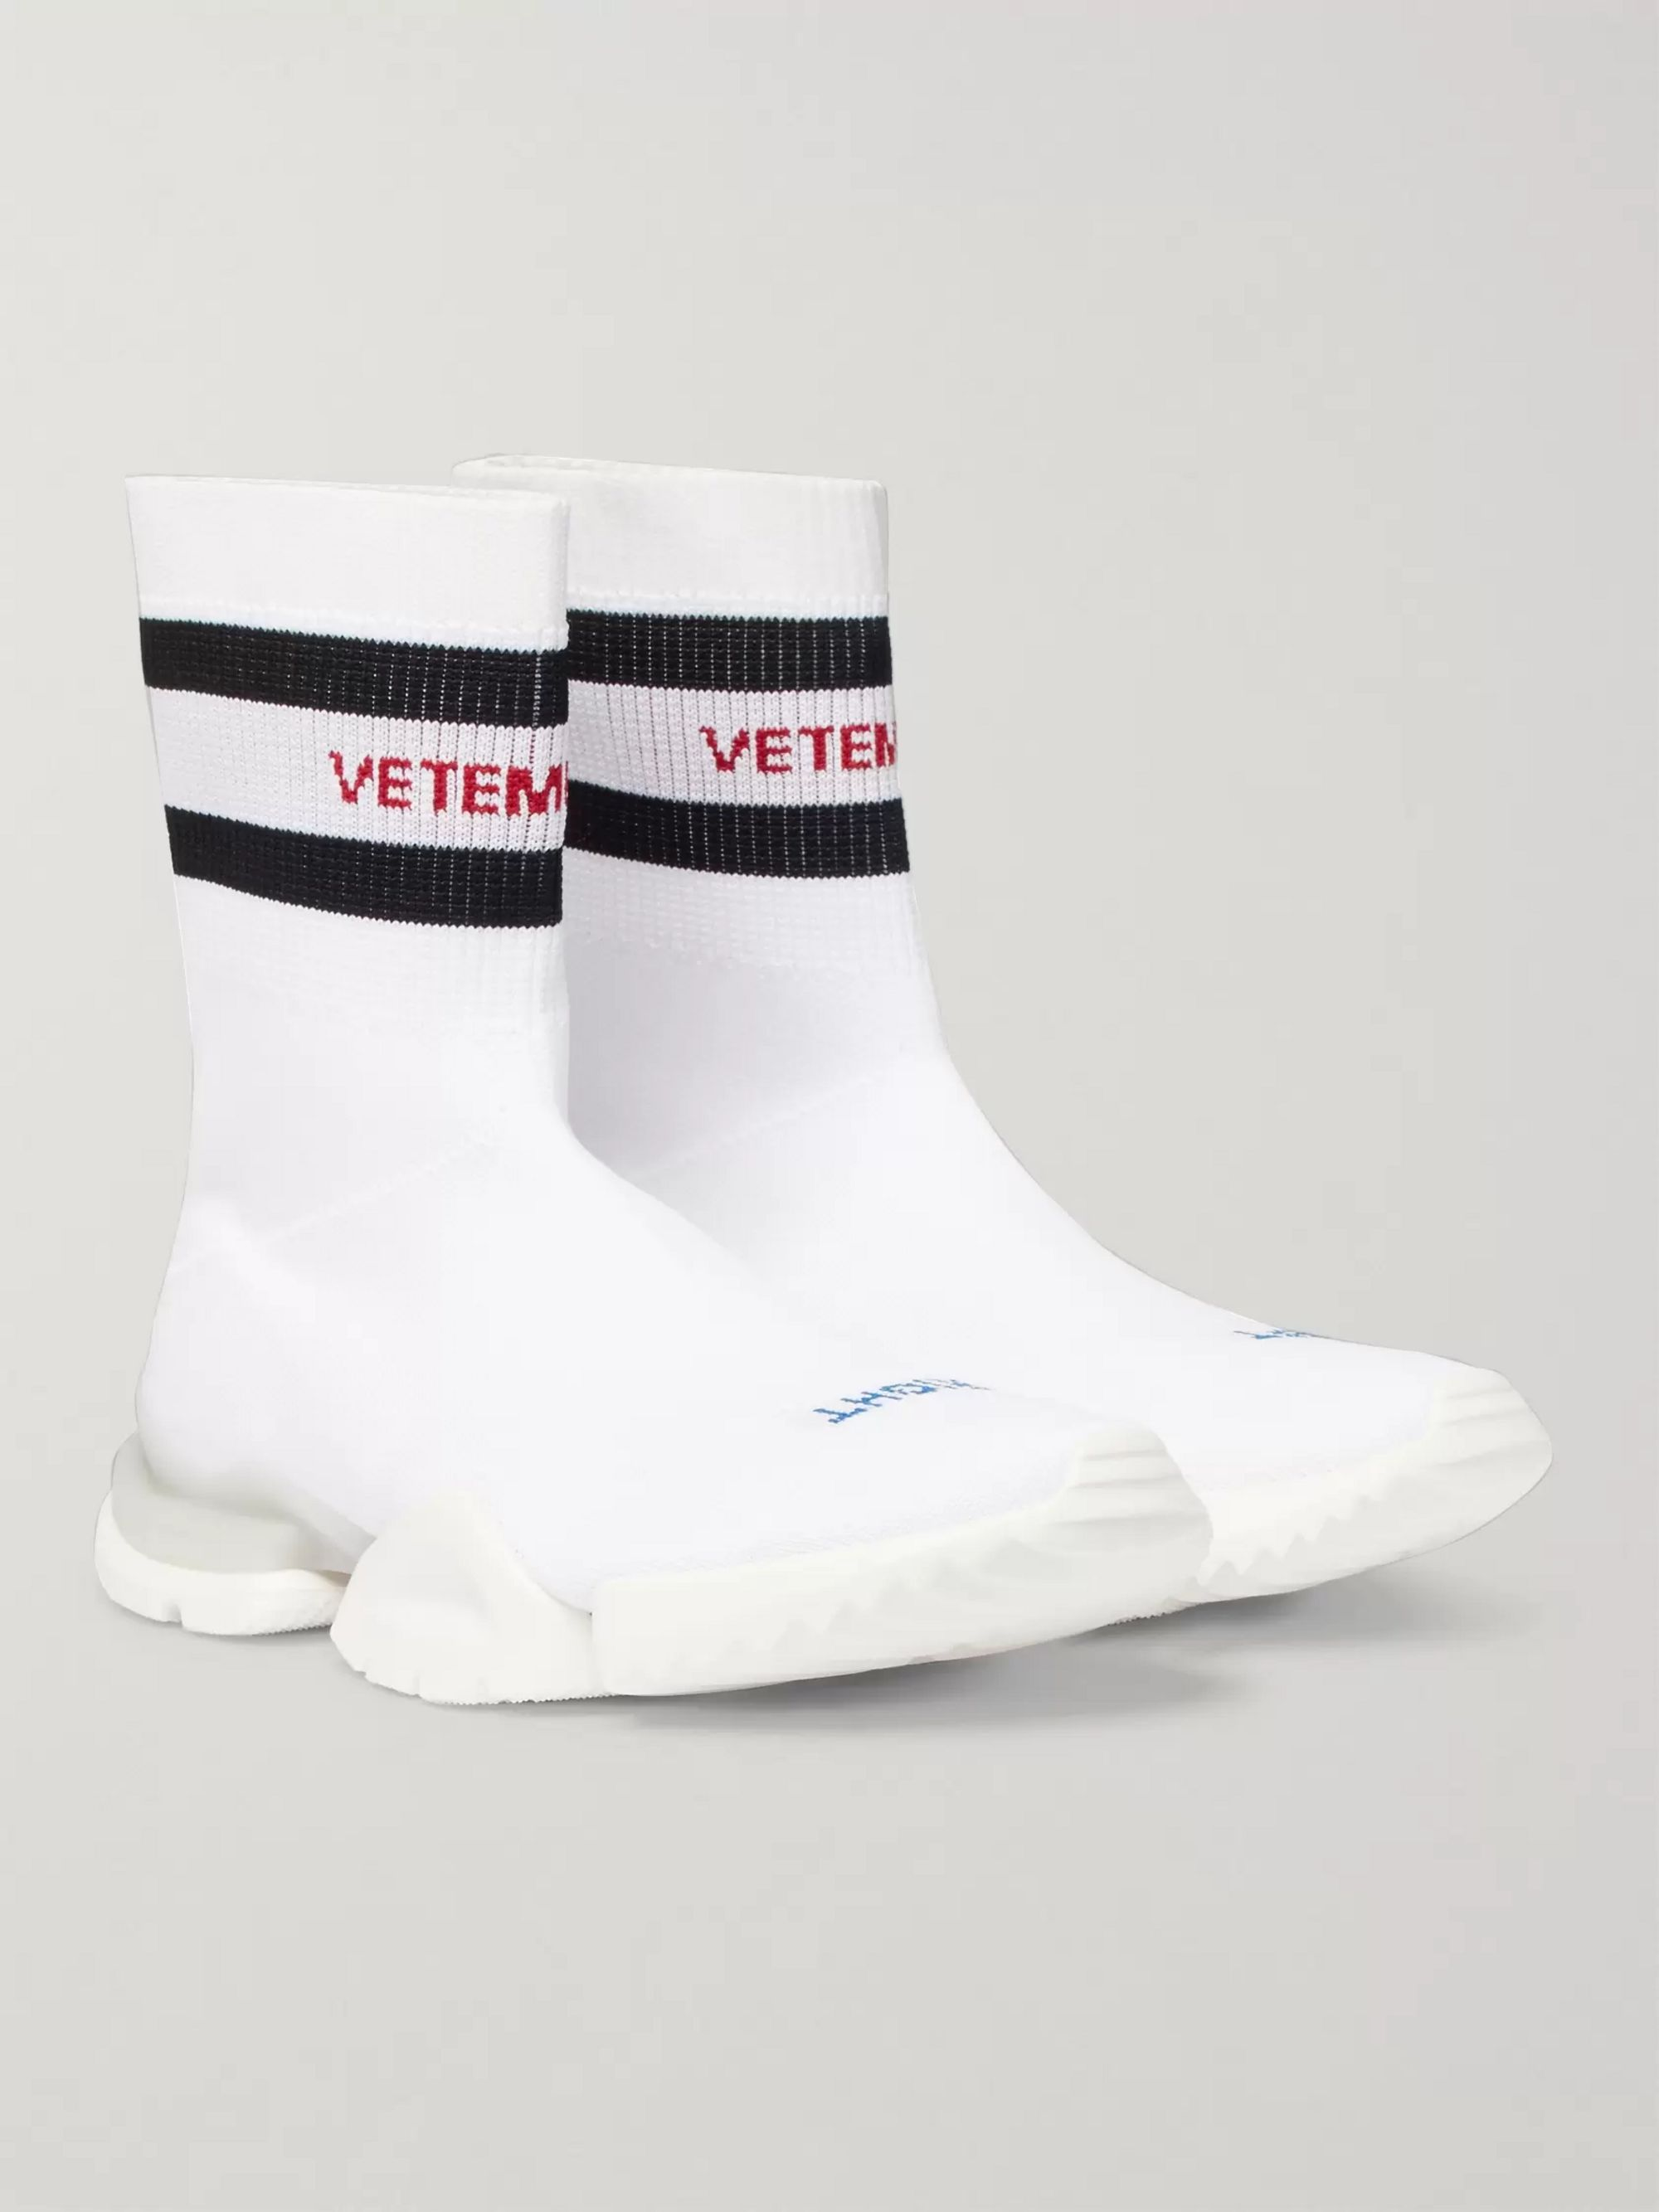 vetements reebok shoes sock